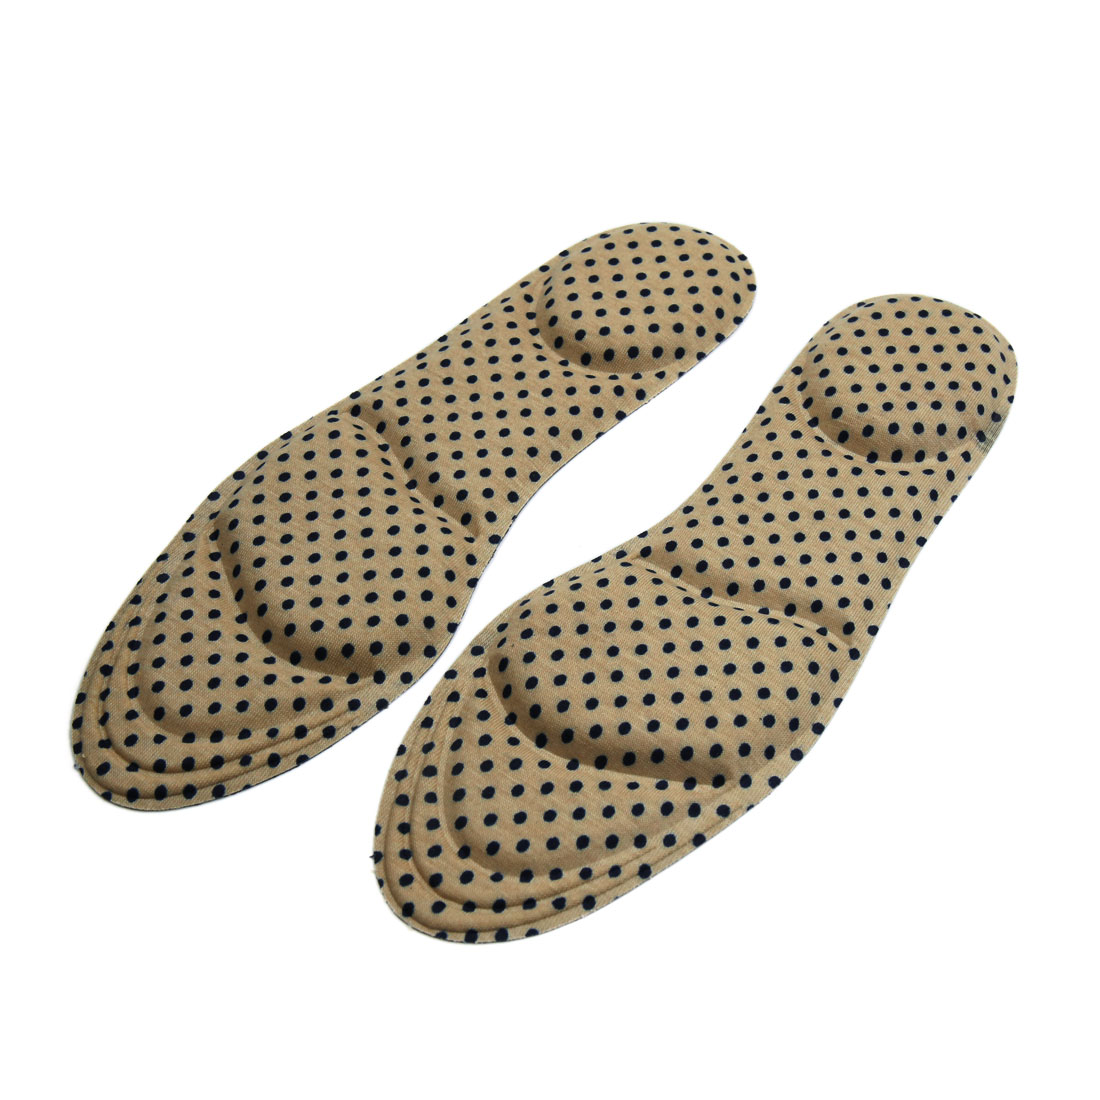 1 Pair Sponge Anti-slip Woman Arch Insert Insoles Shoes Pad Cushion #6